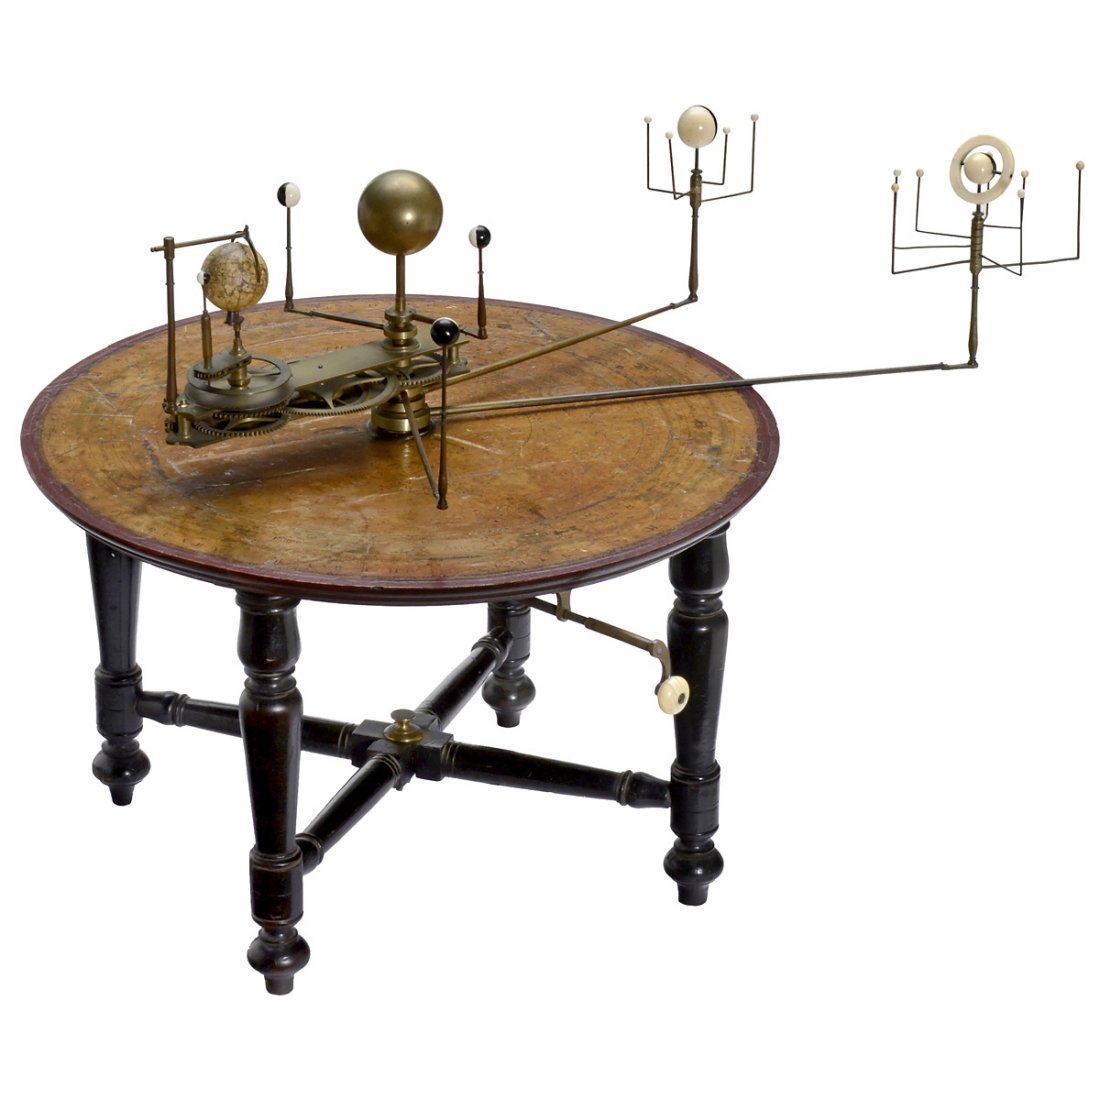 An English Table Orrery, early 19th Century